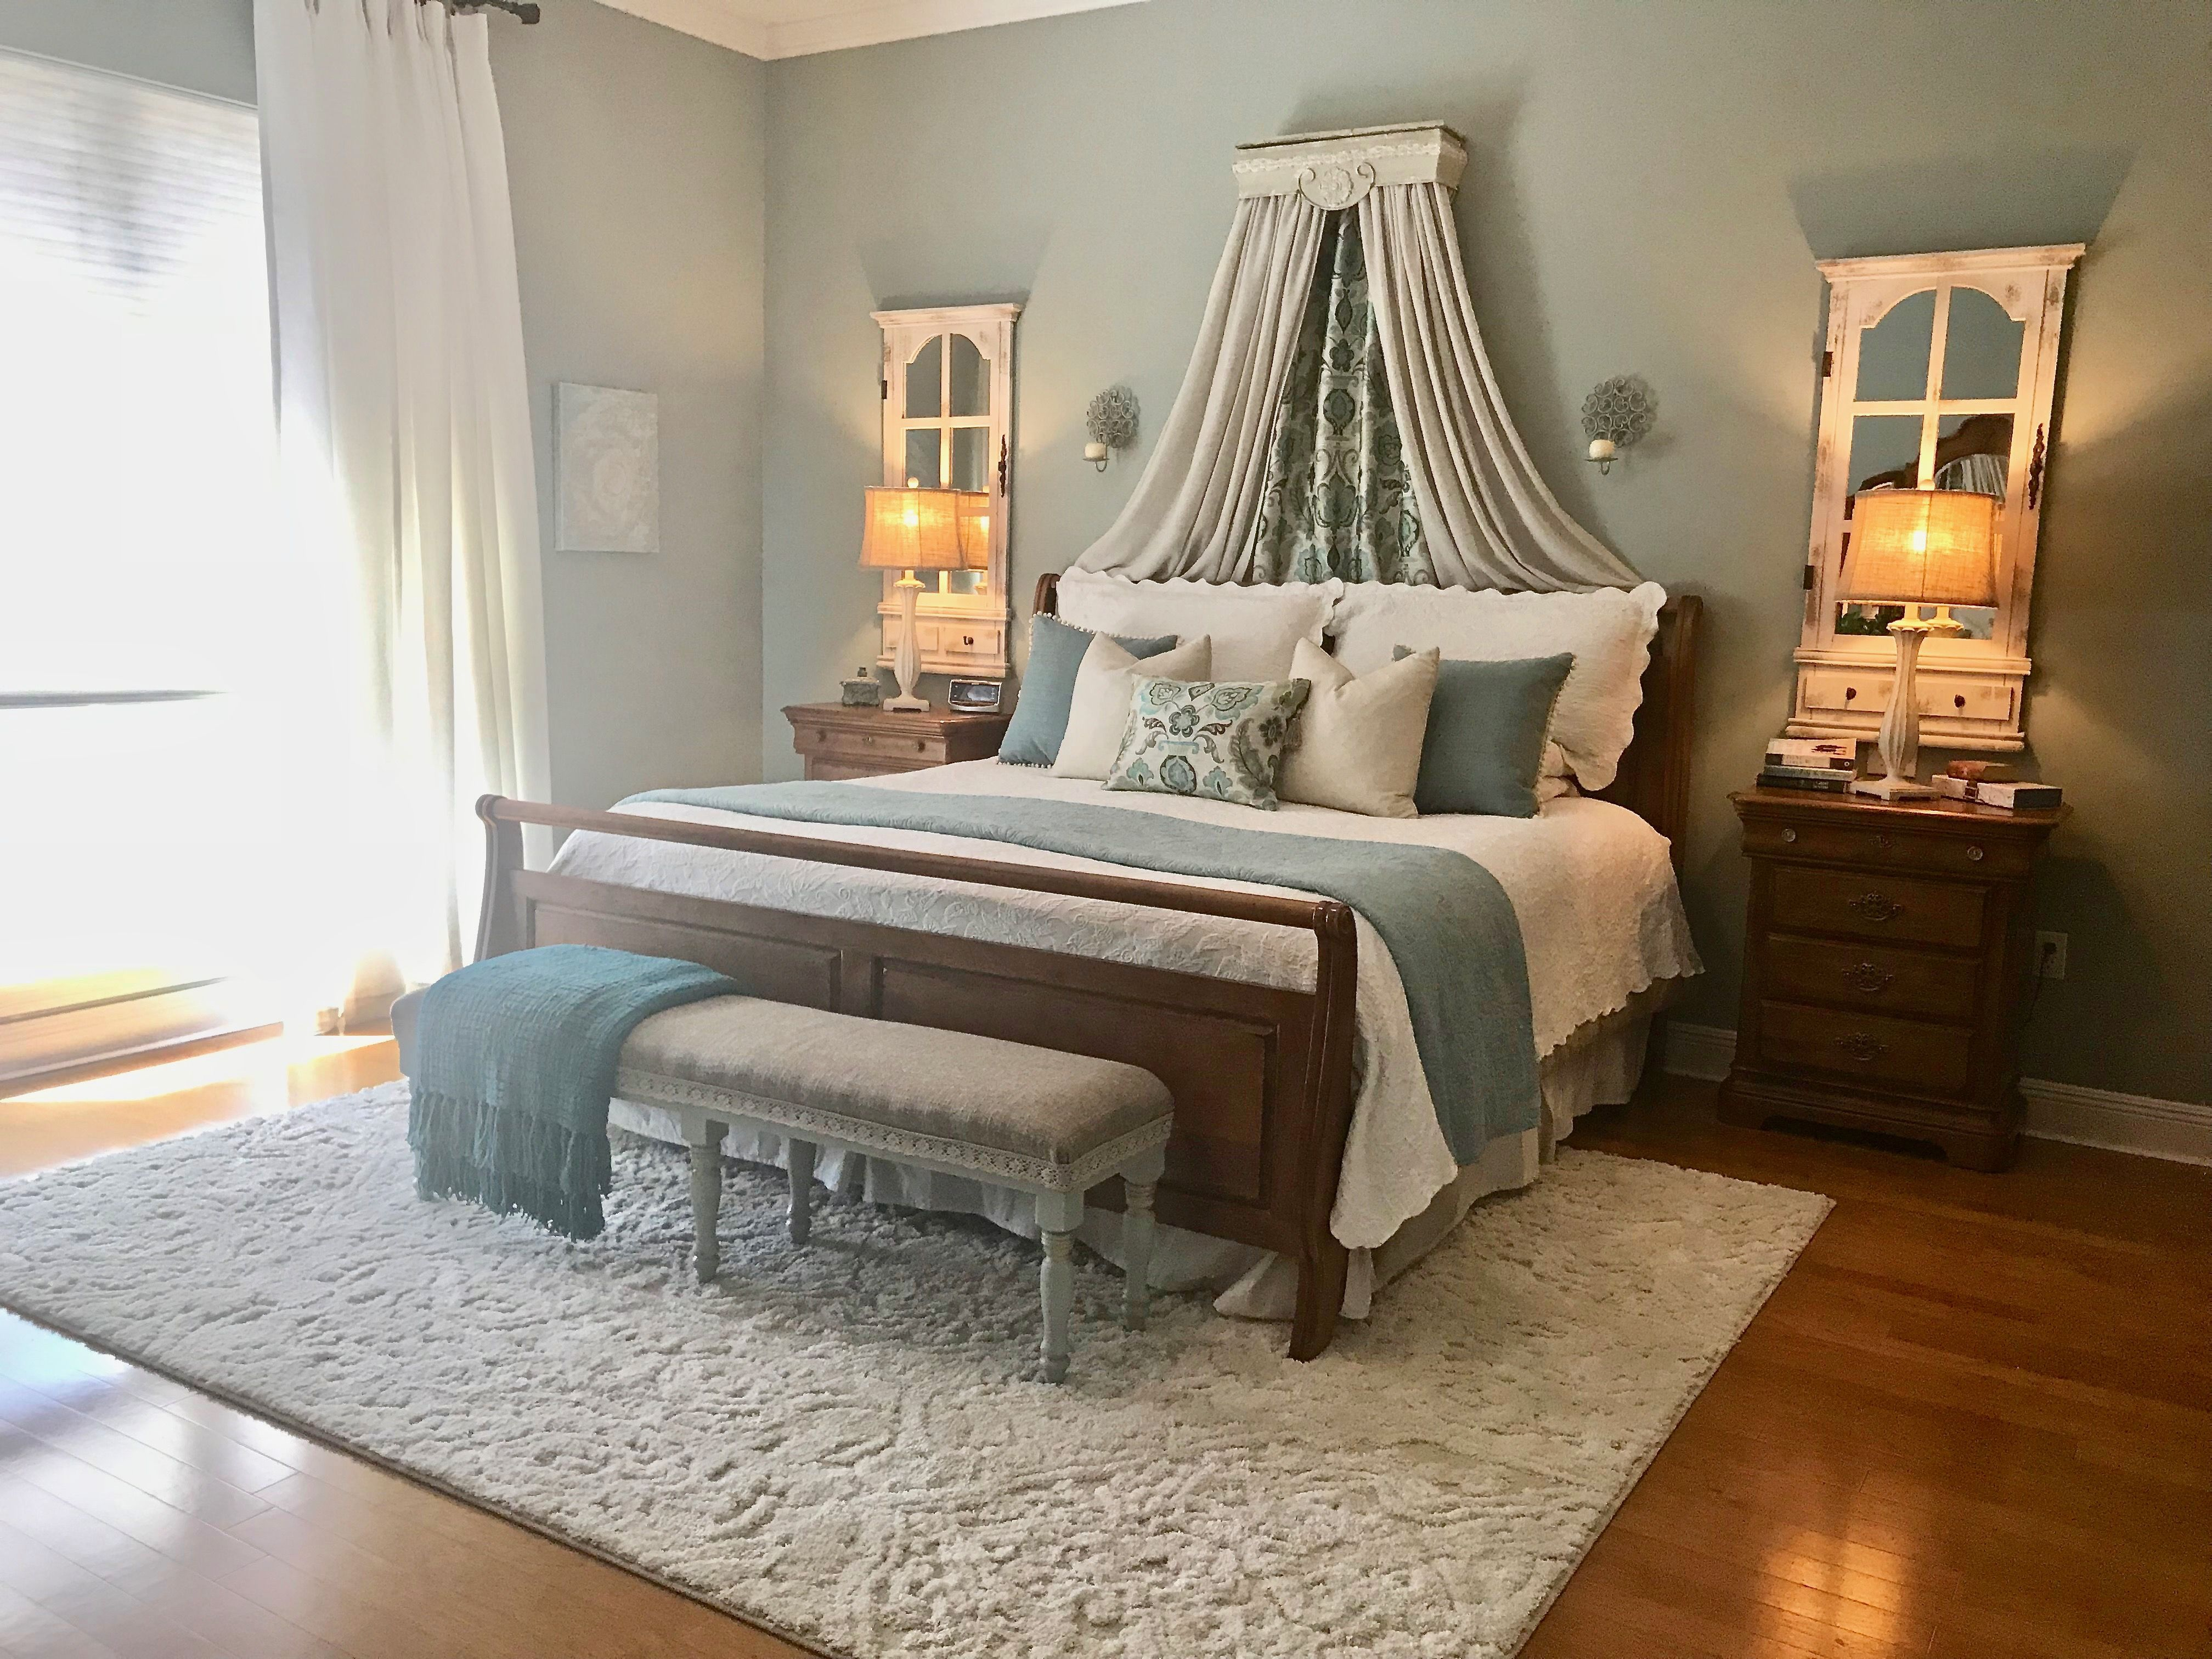 Sherwin Williams Oyster Bay Wall Paint Is The Perfect Color For A Serene Bedroom Serene Bedroom Guest Bedroom Colors Master Bedroom Paint